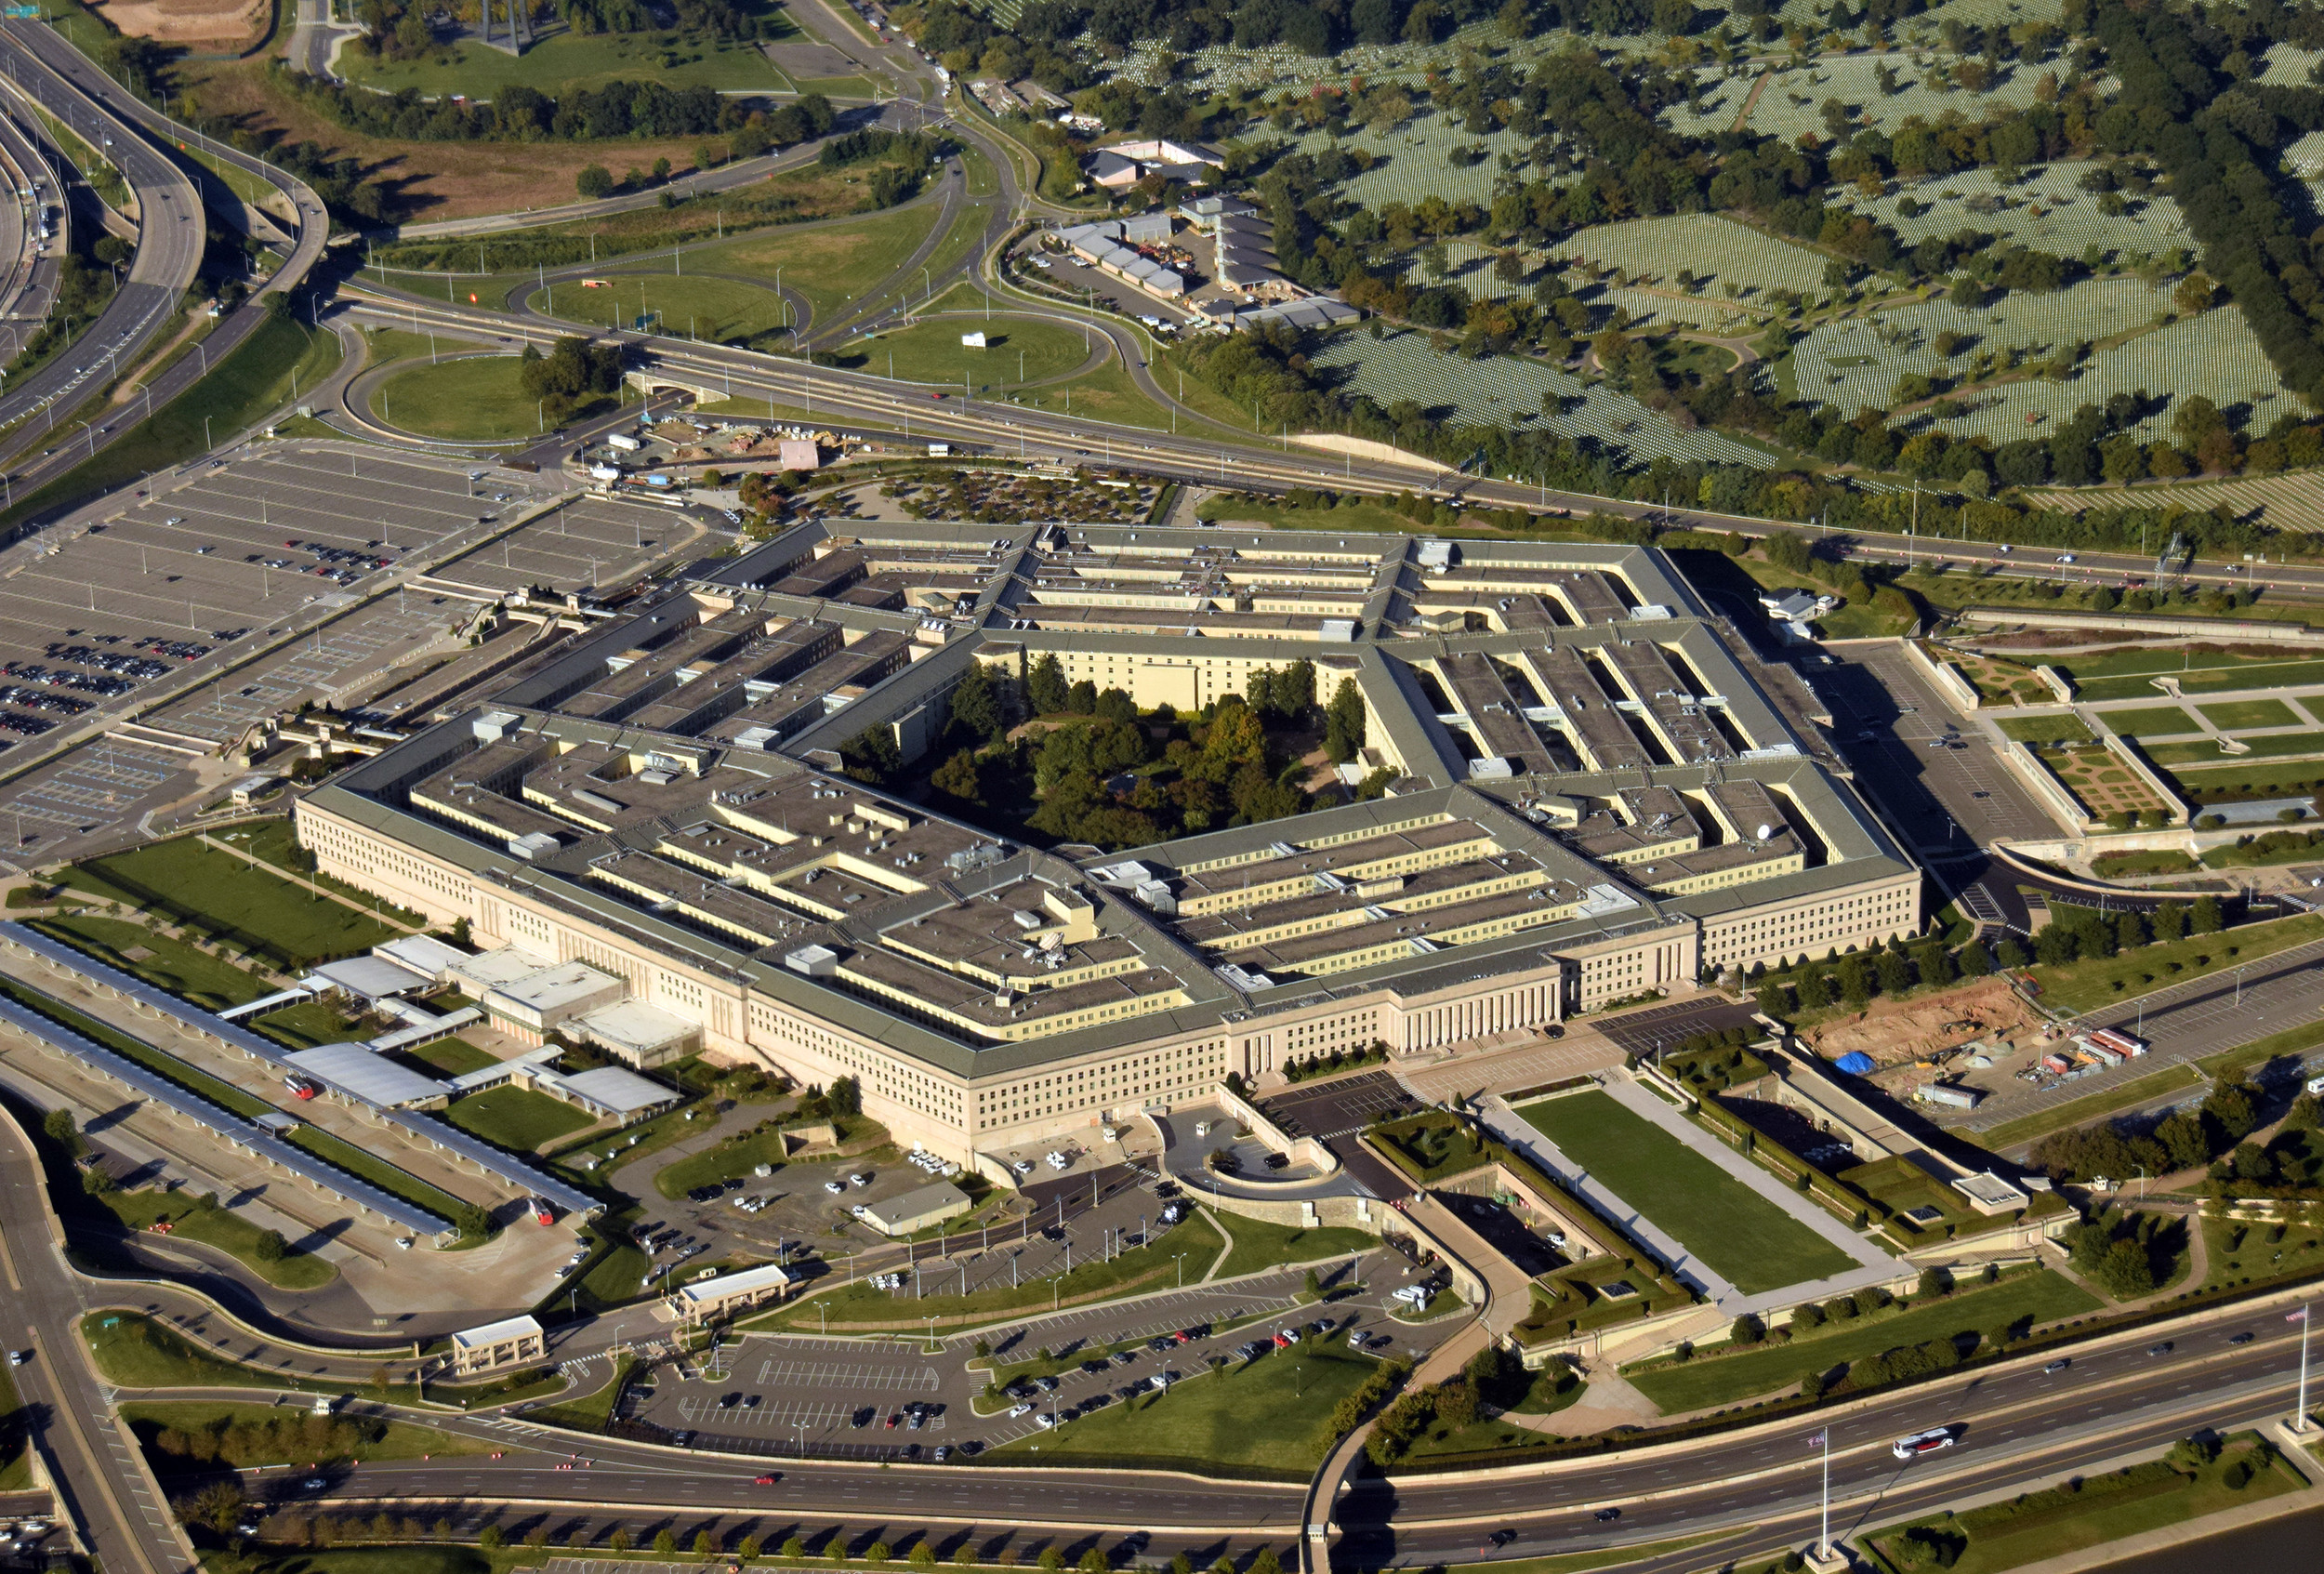 EXCLUSIVE Killing Cruise Missiles: Pentagon To Test Rival Lasers